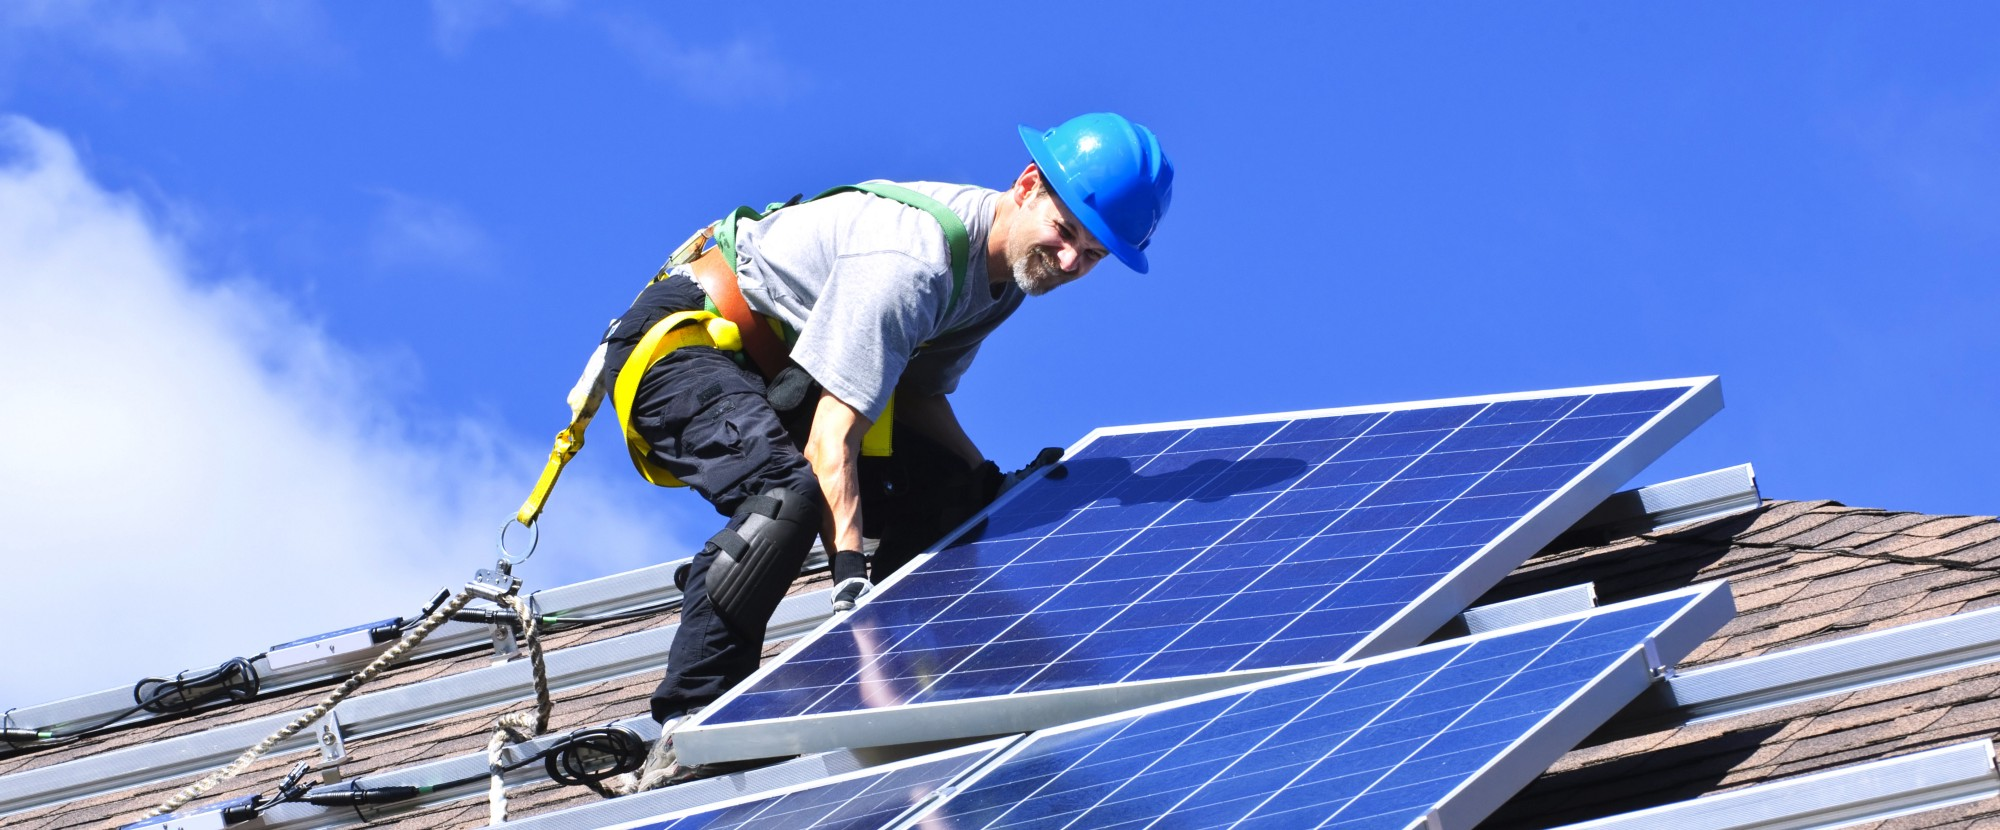 Americans are now twice as likely to work in solar as incoal